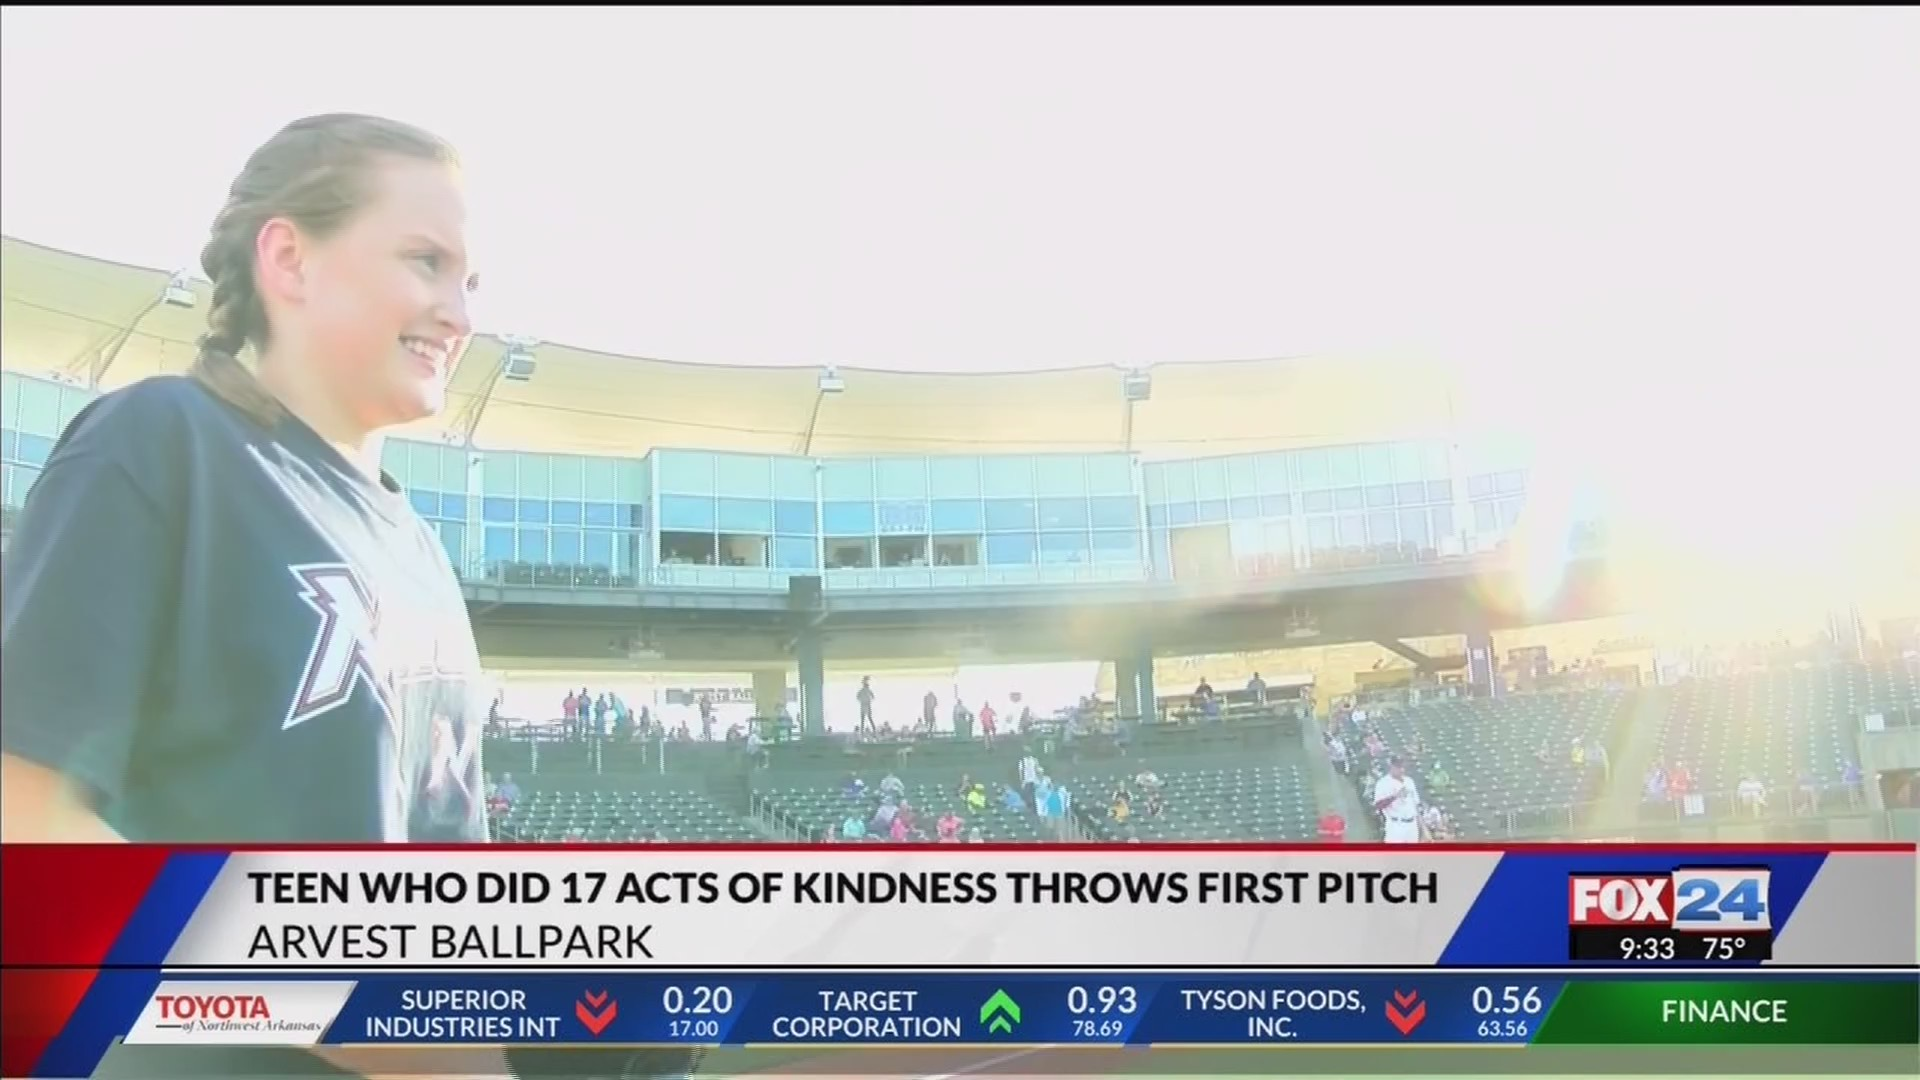 Acts_of_Kindness_Honored_with_First_Pitc_0_20180724031845